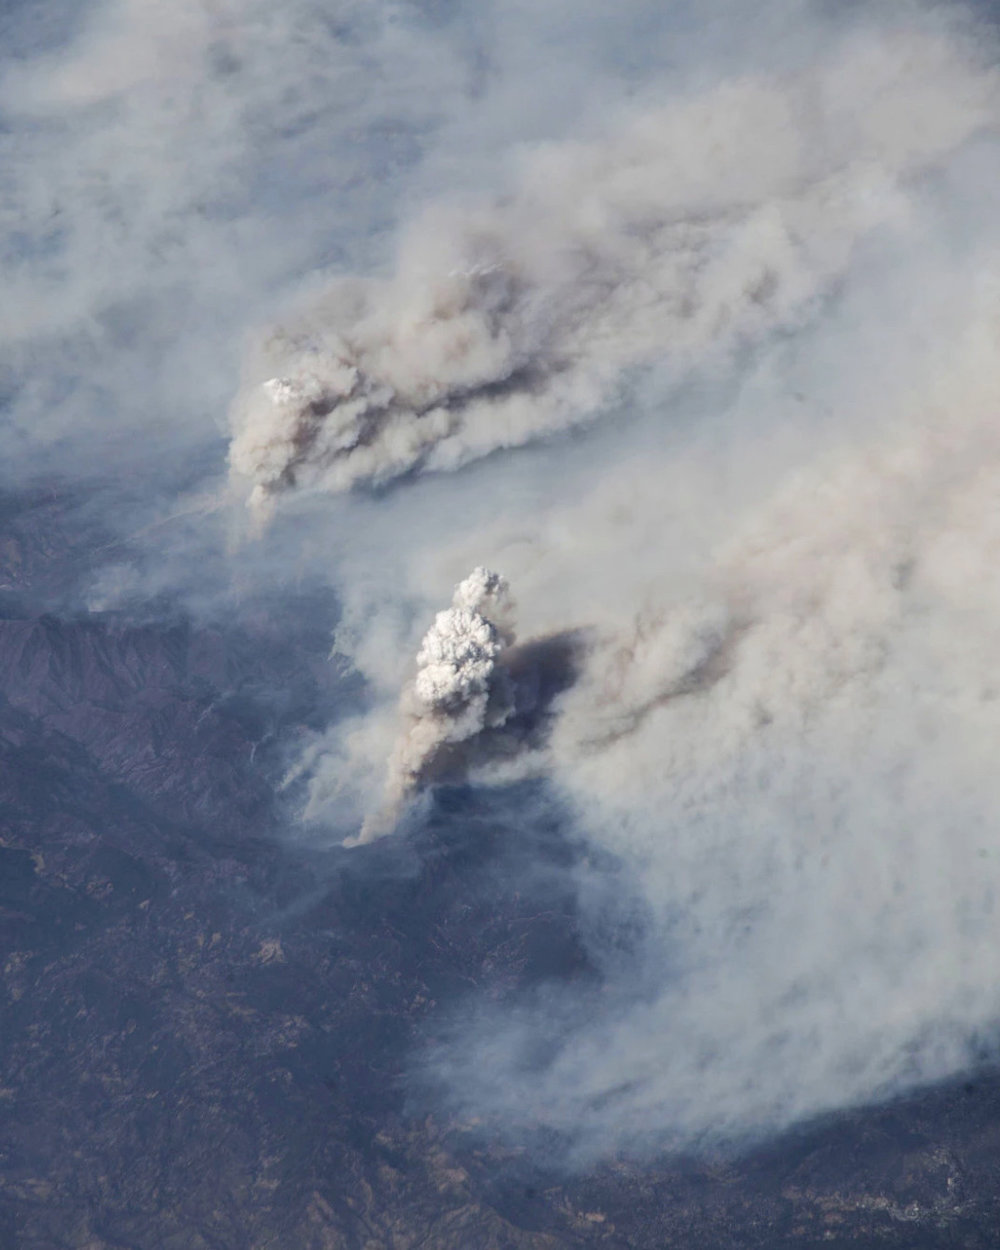 This image of the Carr and Ferguson wildfires in California was taken aboard the International Space Station by European Space Agency astronaut Alexander Gerst on August 3rd. The Carr Fire, which was first reported July 23rd, has burned more than 261 square miles (676 sq. km) in Shasta and Trinity counties and is currently the sixth-most destructive fire in California's history. The Ferguson Fire began July 13th and has since burned 147 square miles (382 sq. km) in the Sierra and Stanislaus National Forests. Both fires have been attributed to warming temperatures and unprecedented dryness.  Source imagery: NASA - National Aeronautics and Space Administration